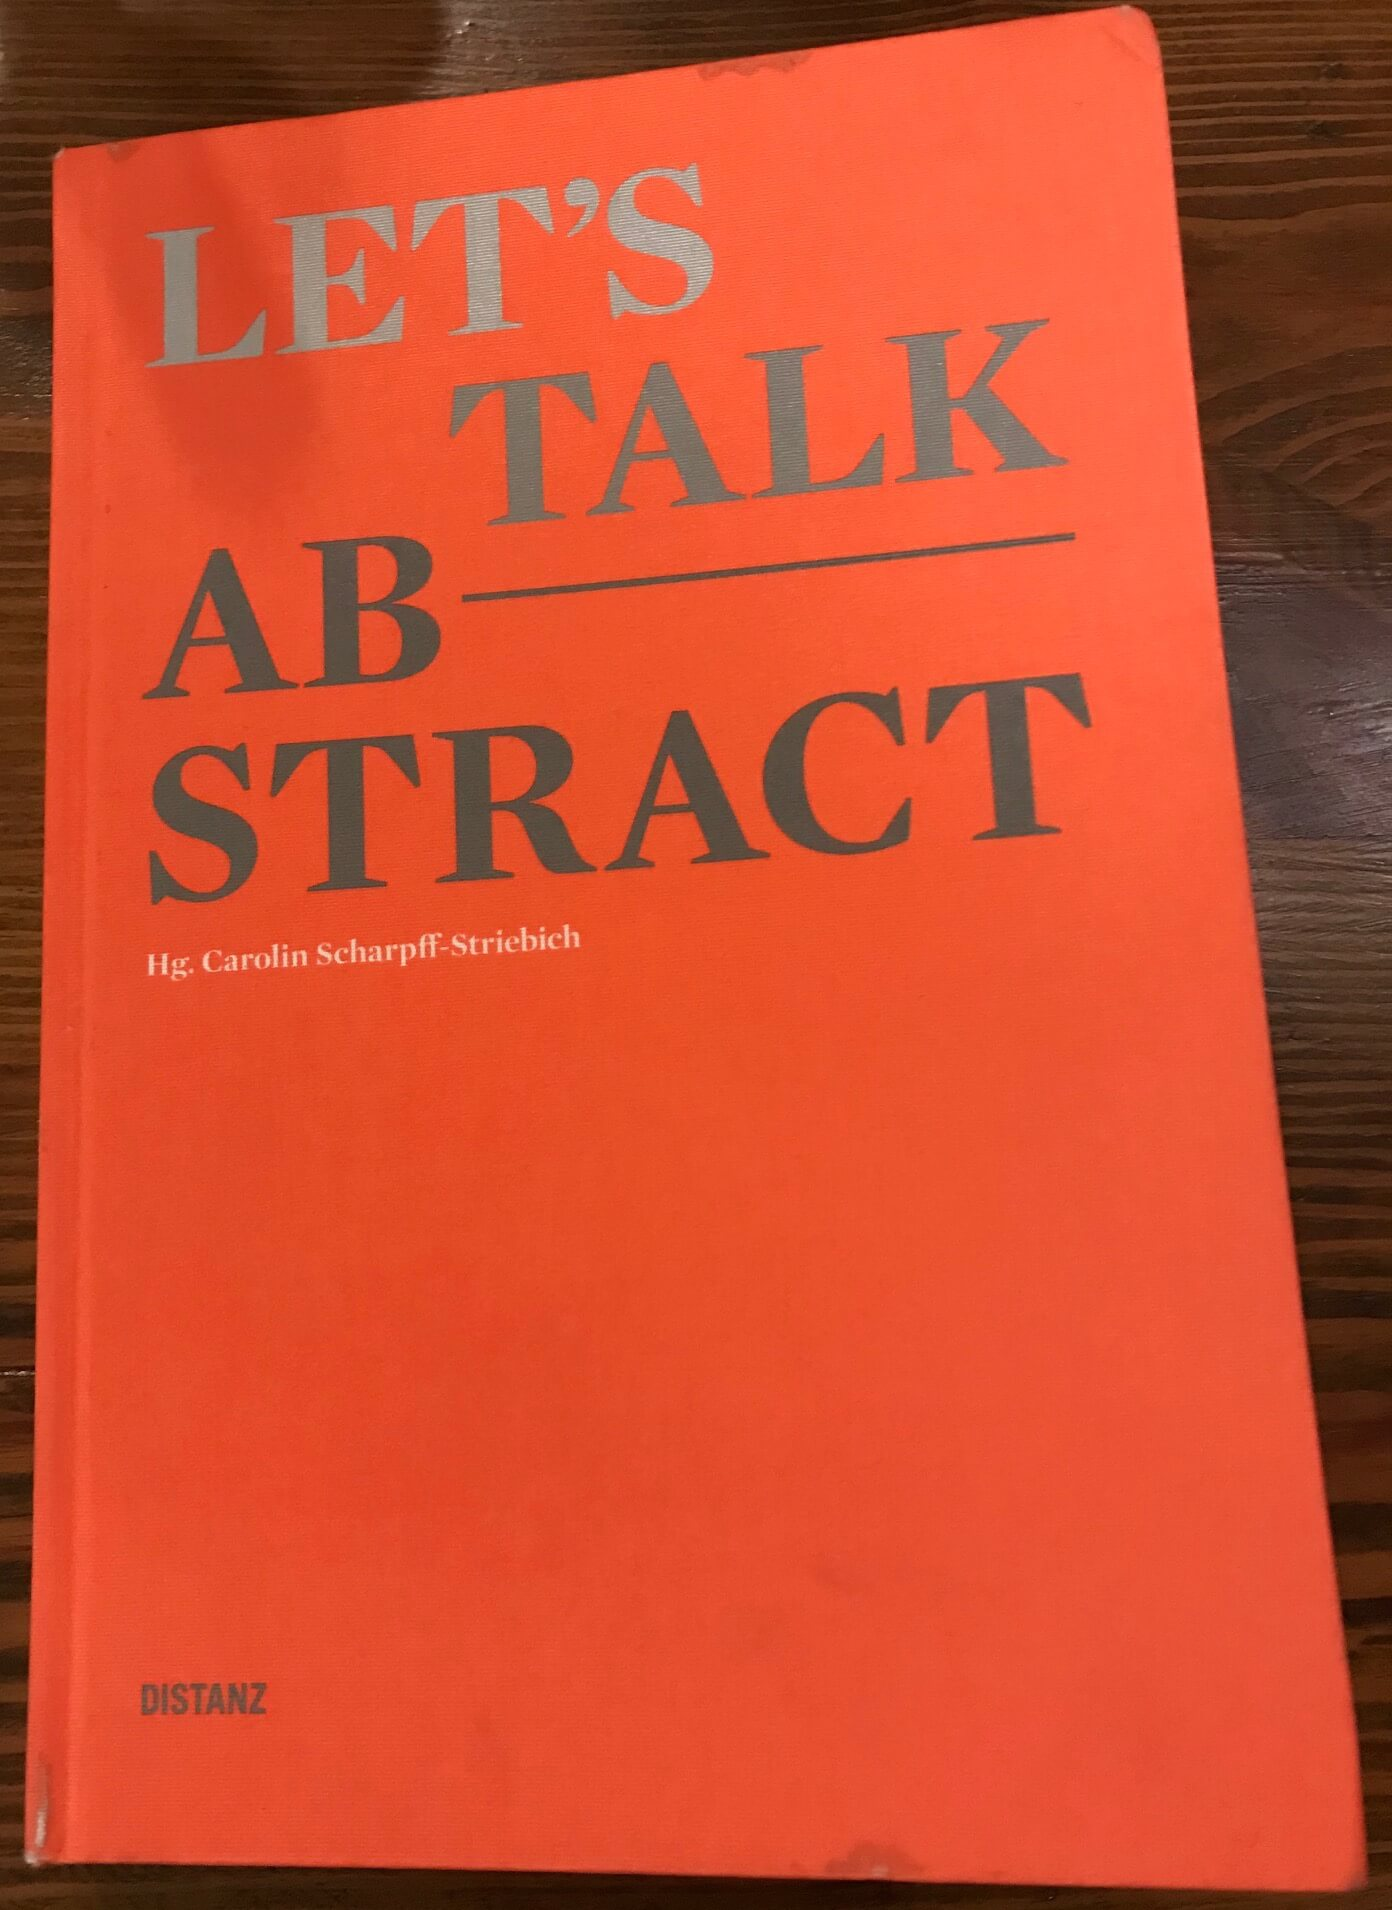 Let's talk Abstract